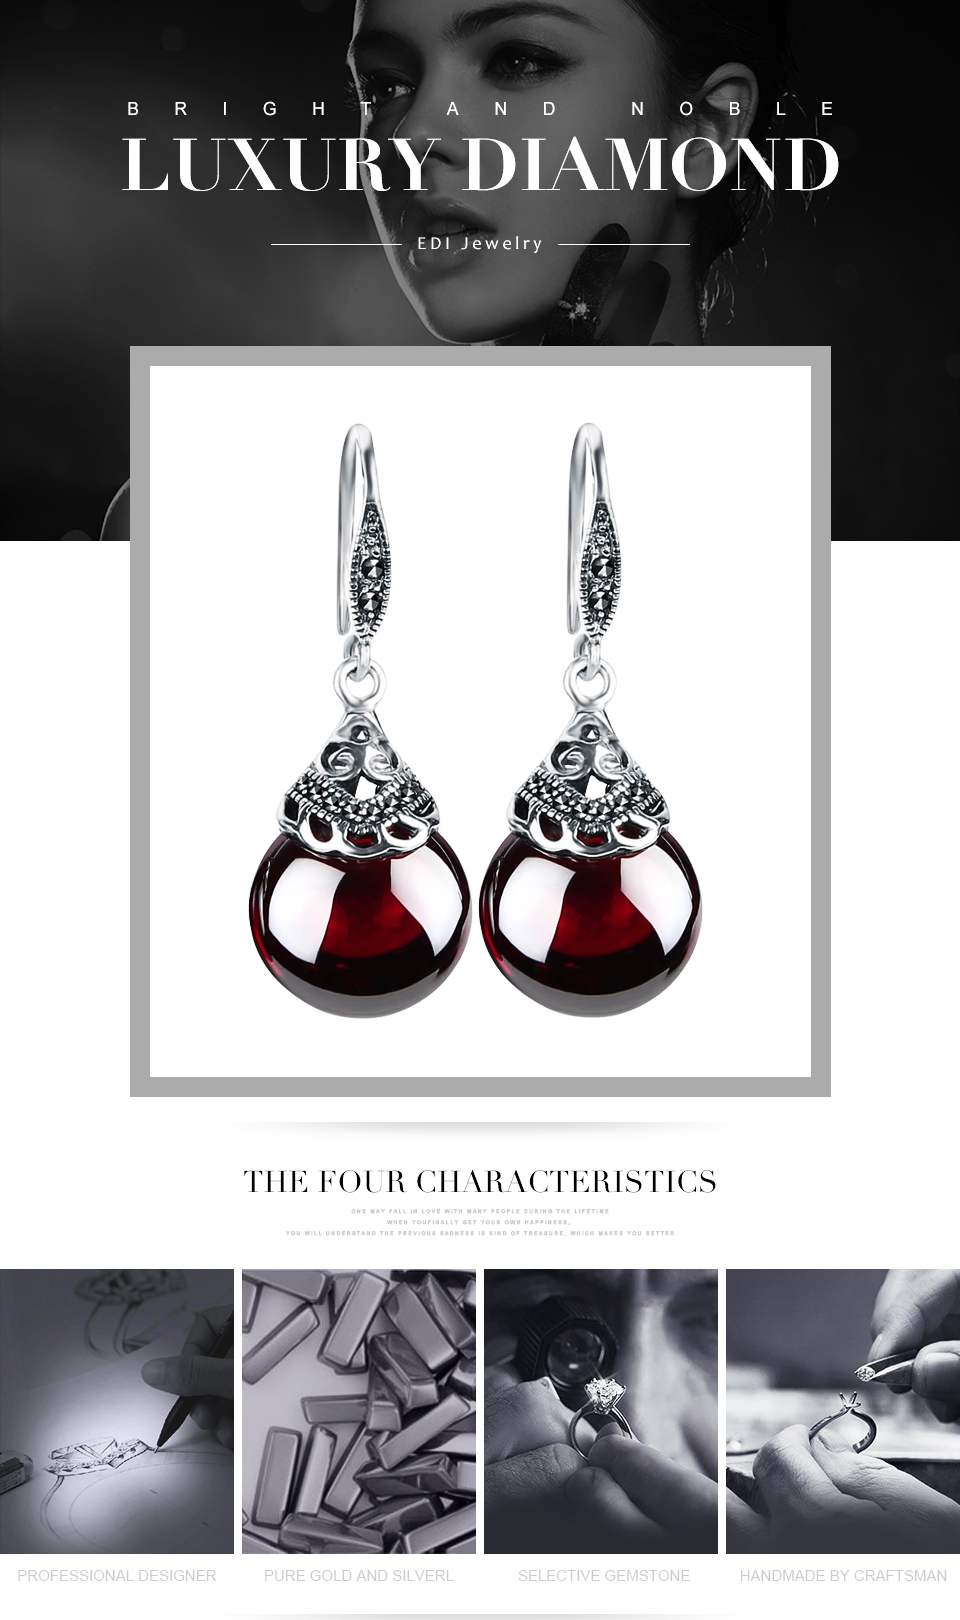 Edi Retro Round Gemstone Garnet Earrings Female 100 925 Sterling Pedal And Craig Anderton S Wah Anti Design Gives Good Wovel Sounds Silver Fine Jewelry Us631